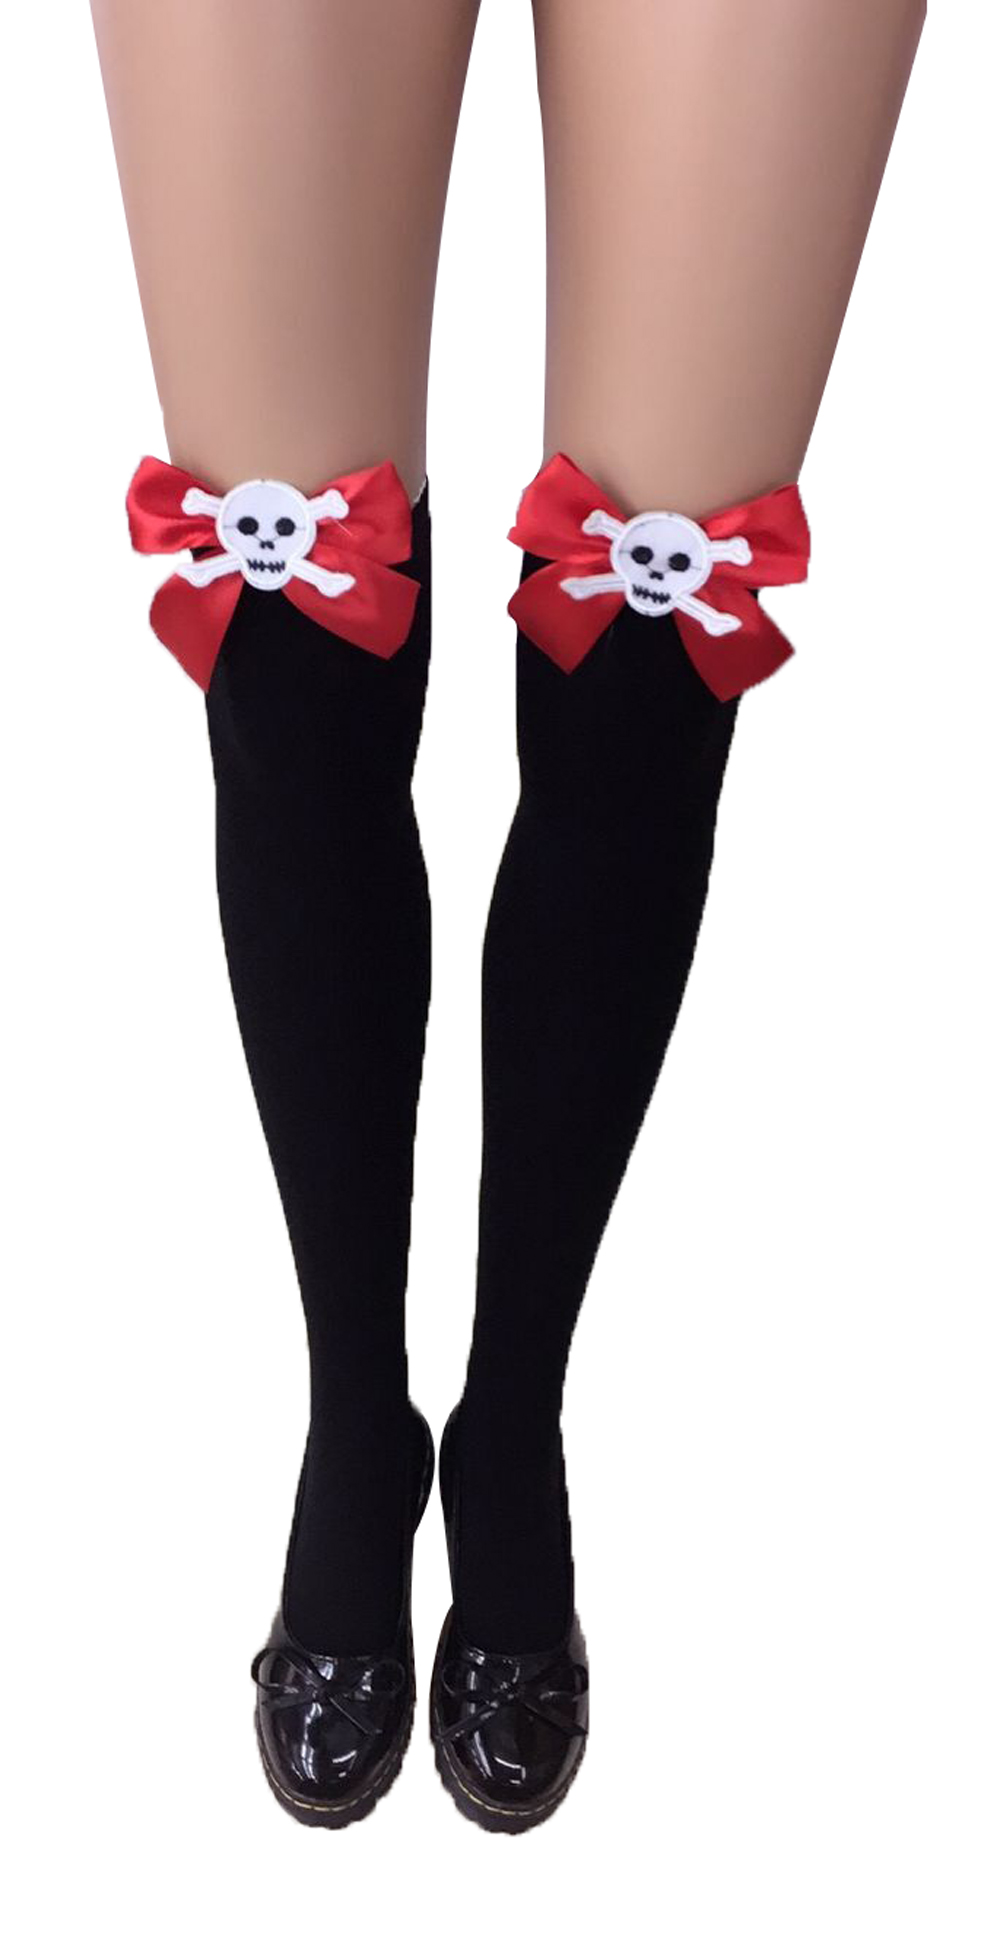 F8195-1 Thigh Stocking with Satin Bows Opaque Over The Knee Halloween Socks